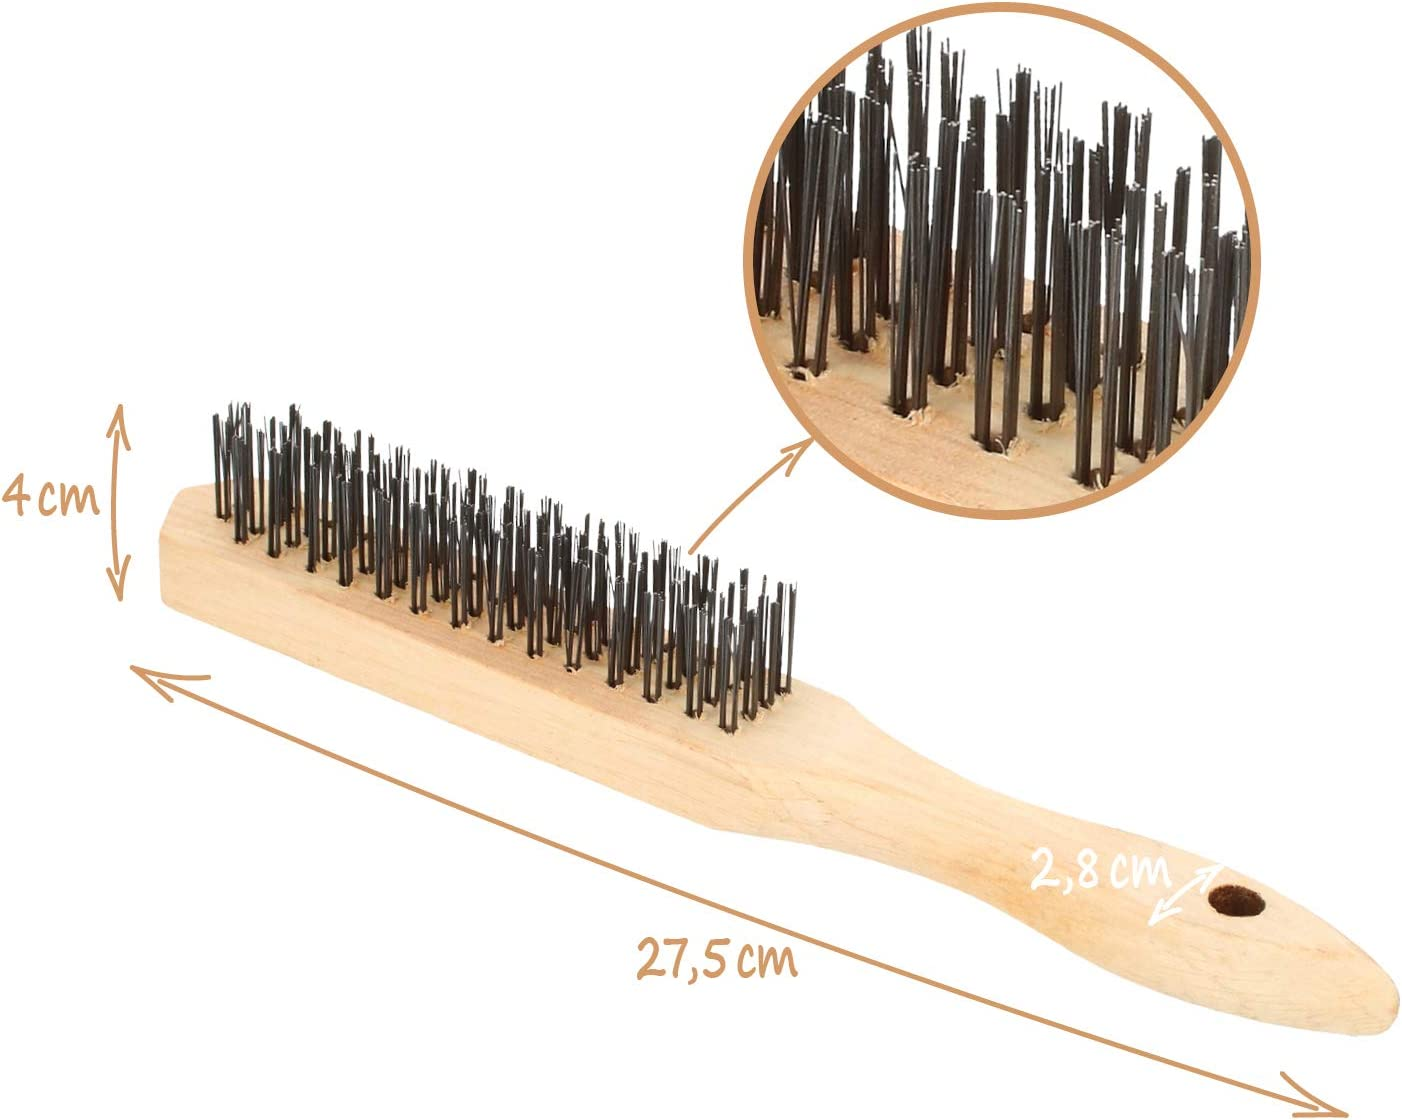 3-piece - wooden handle Steel brush with wooden handle wood and steel com-four/® 3x Hand Wire Brush Wire brush for machining metal